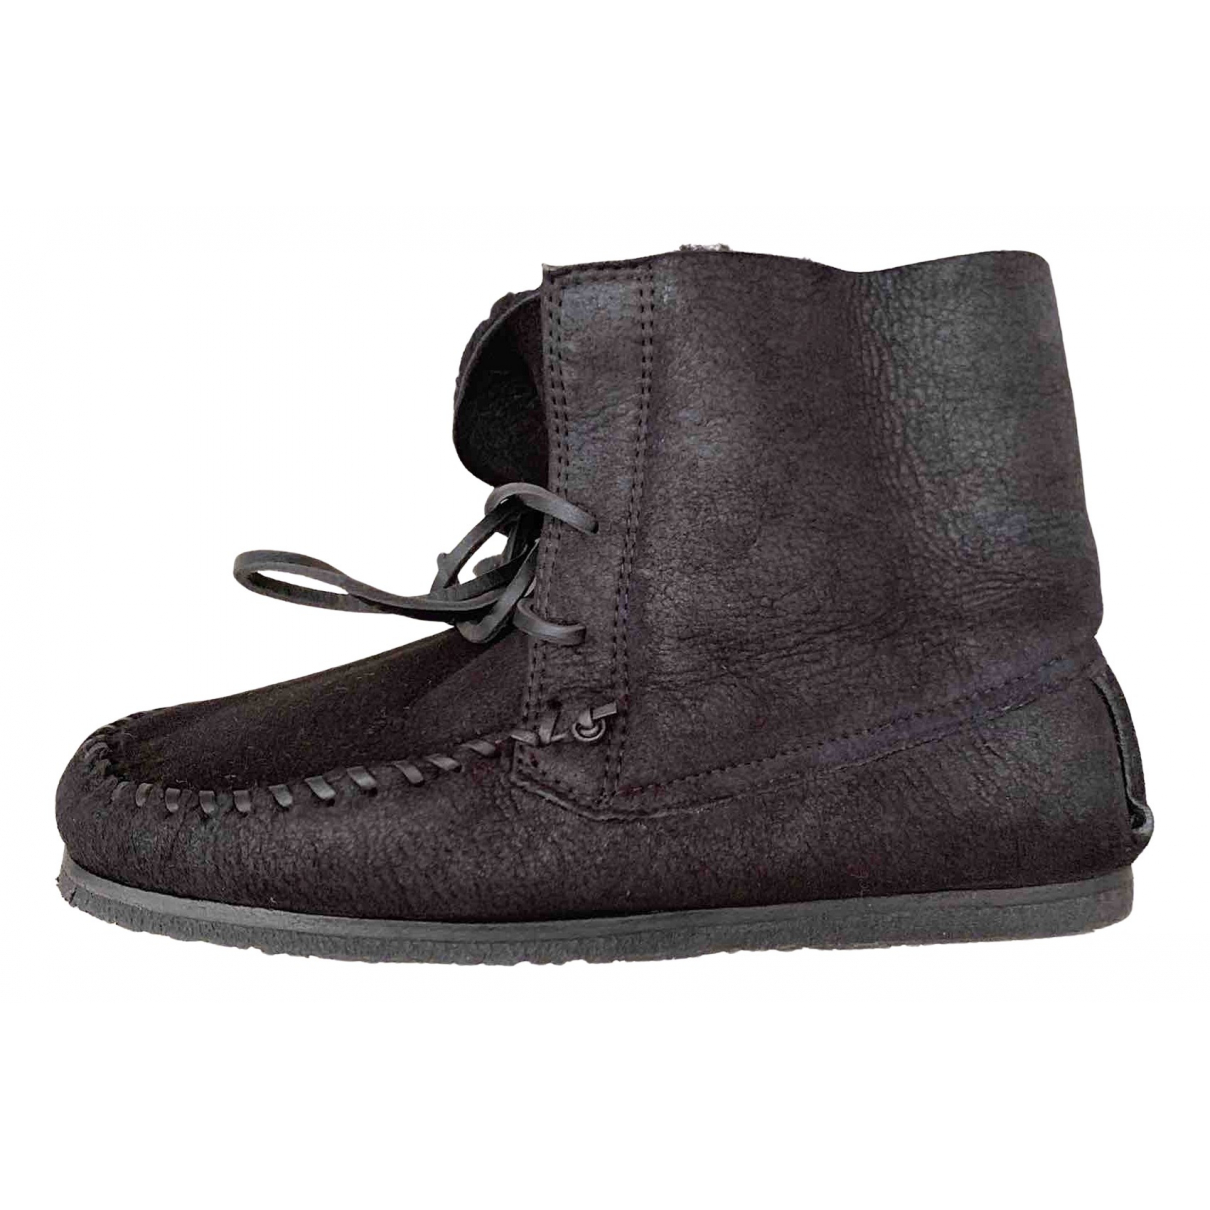 Isabel Marant N Black Leather Ankle boots for Women 37 EU